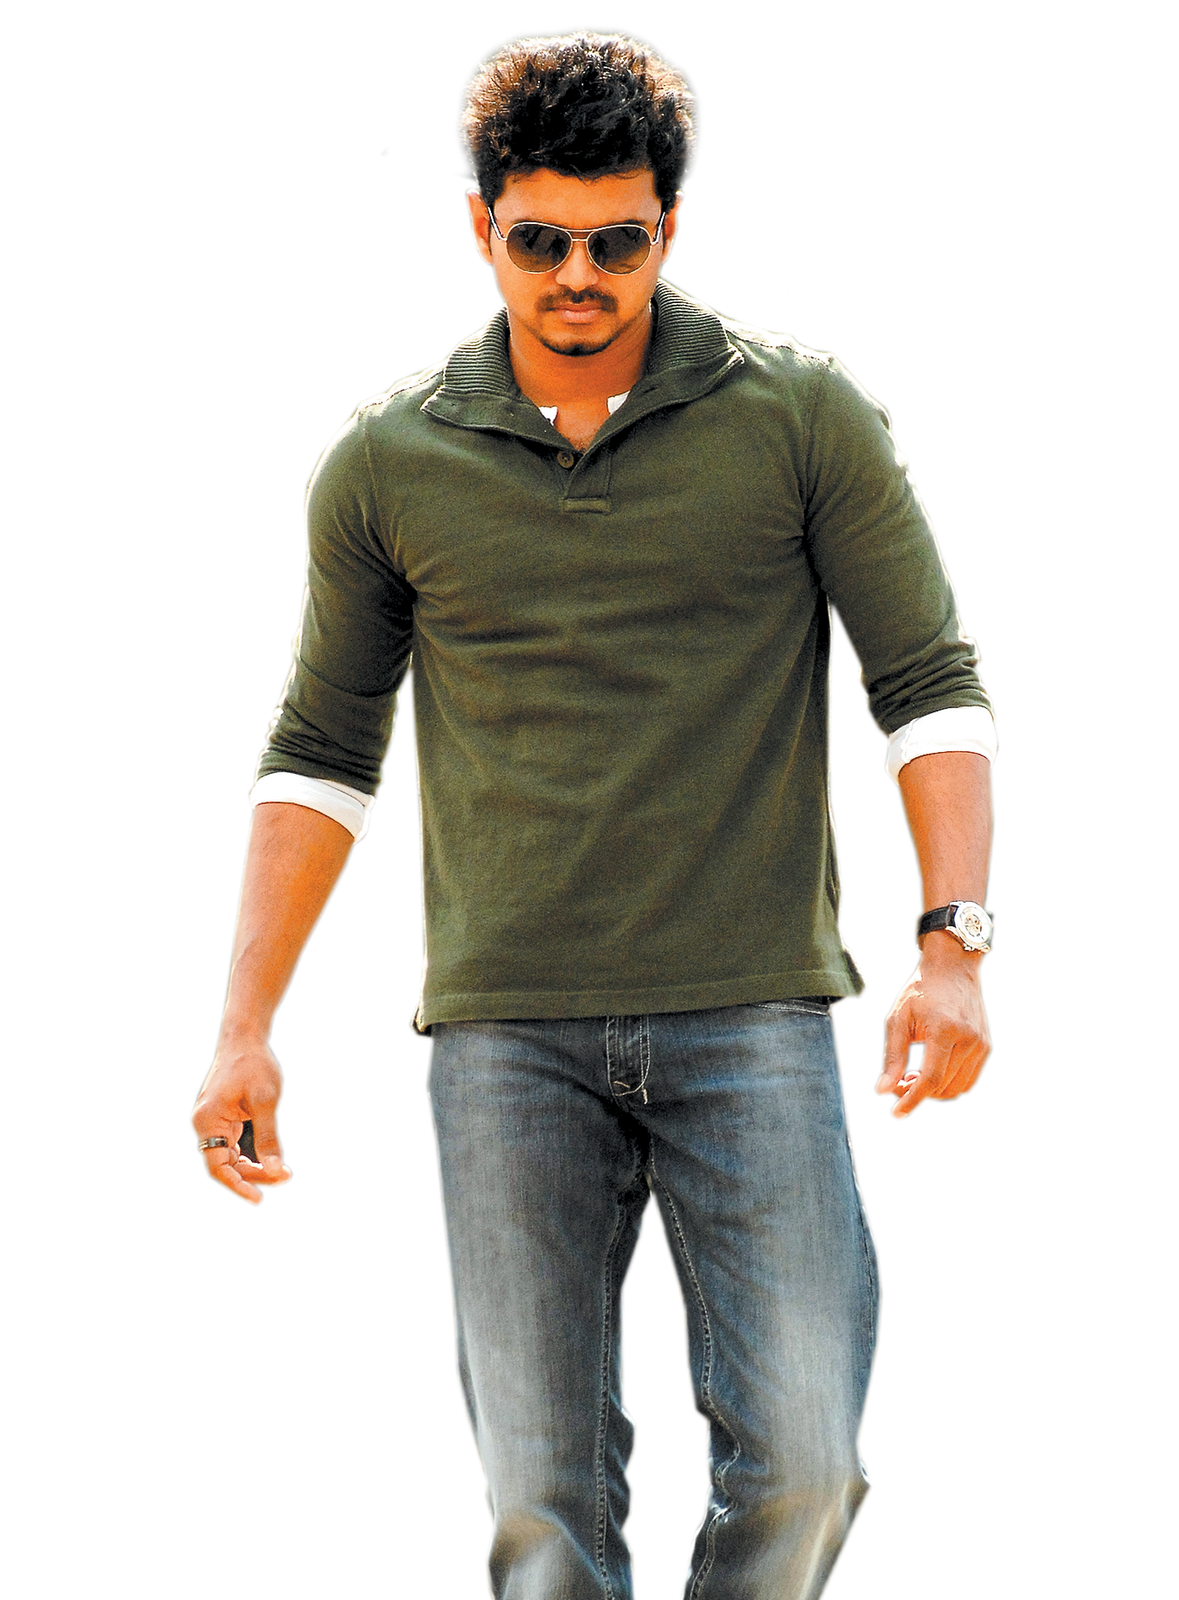 7x9-3 new copy - Vijay PNG